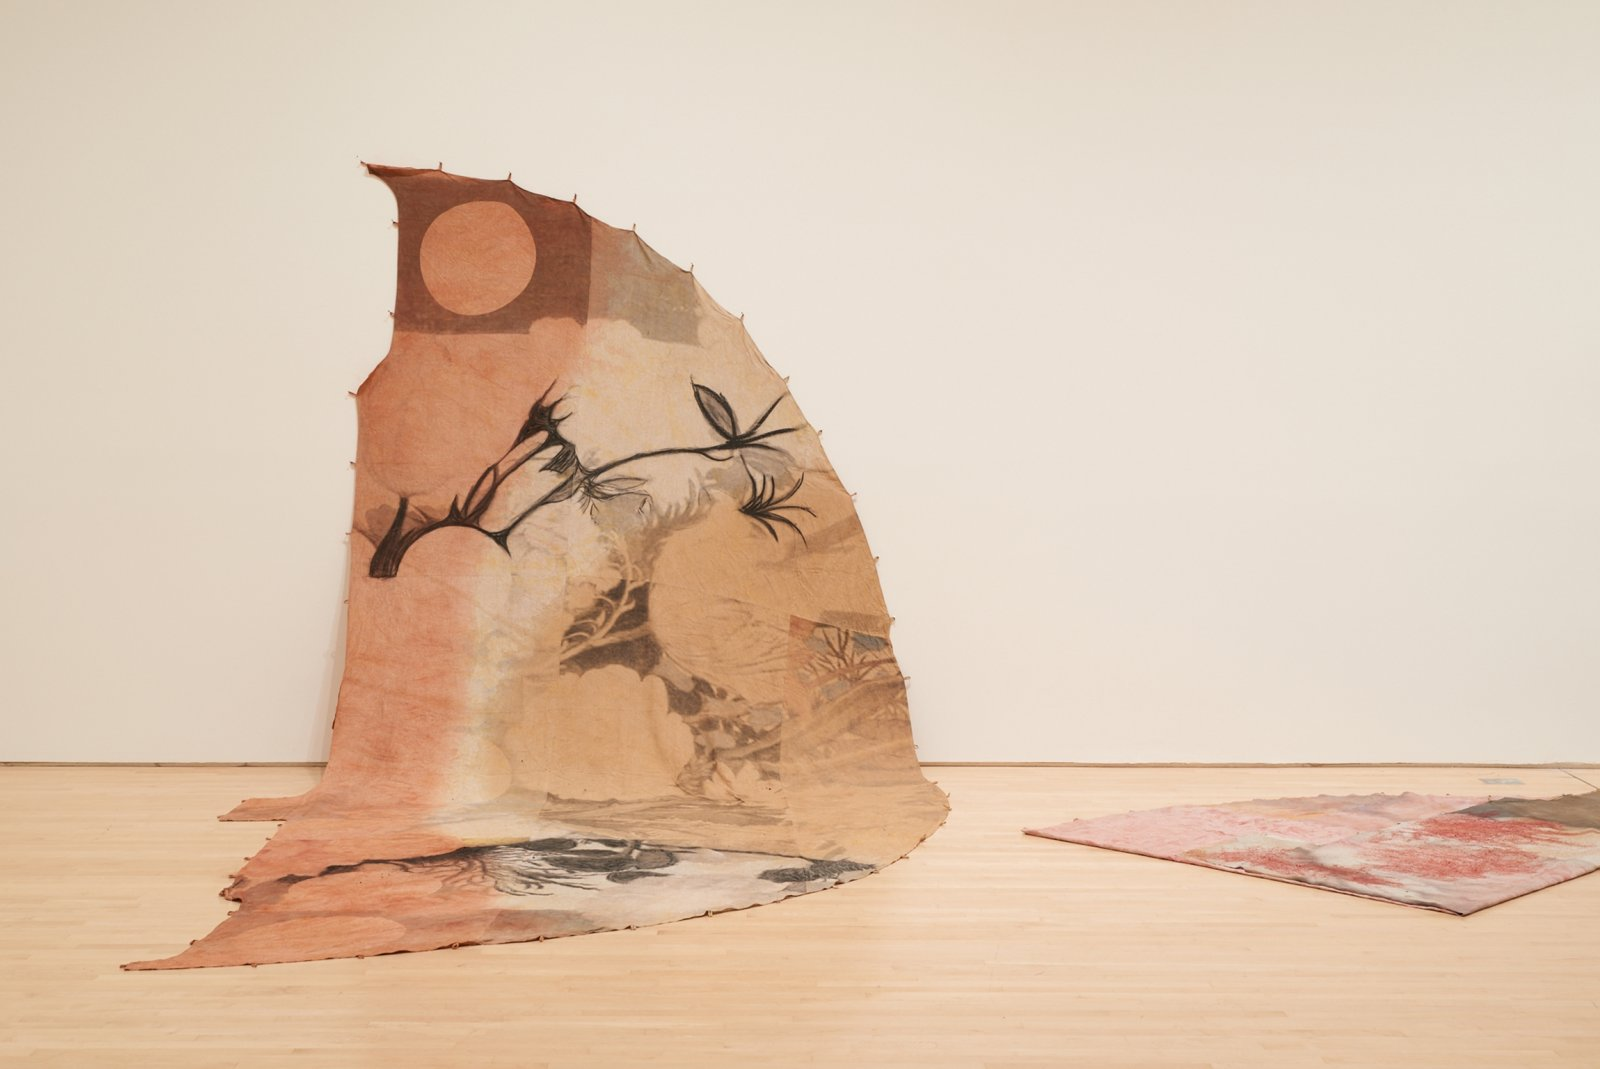 Duane Linklater, can the circle be unbroken 3, 2019, digital print on linen, iron red dye, cypress yellow ochre, black walnut dye, black tea, charcoal, installation dimensions variable. Installation view, SOFT POWER, SF MOMA, San Francisco, USA, 2019 by Duane Linklater